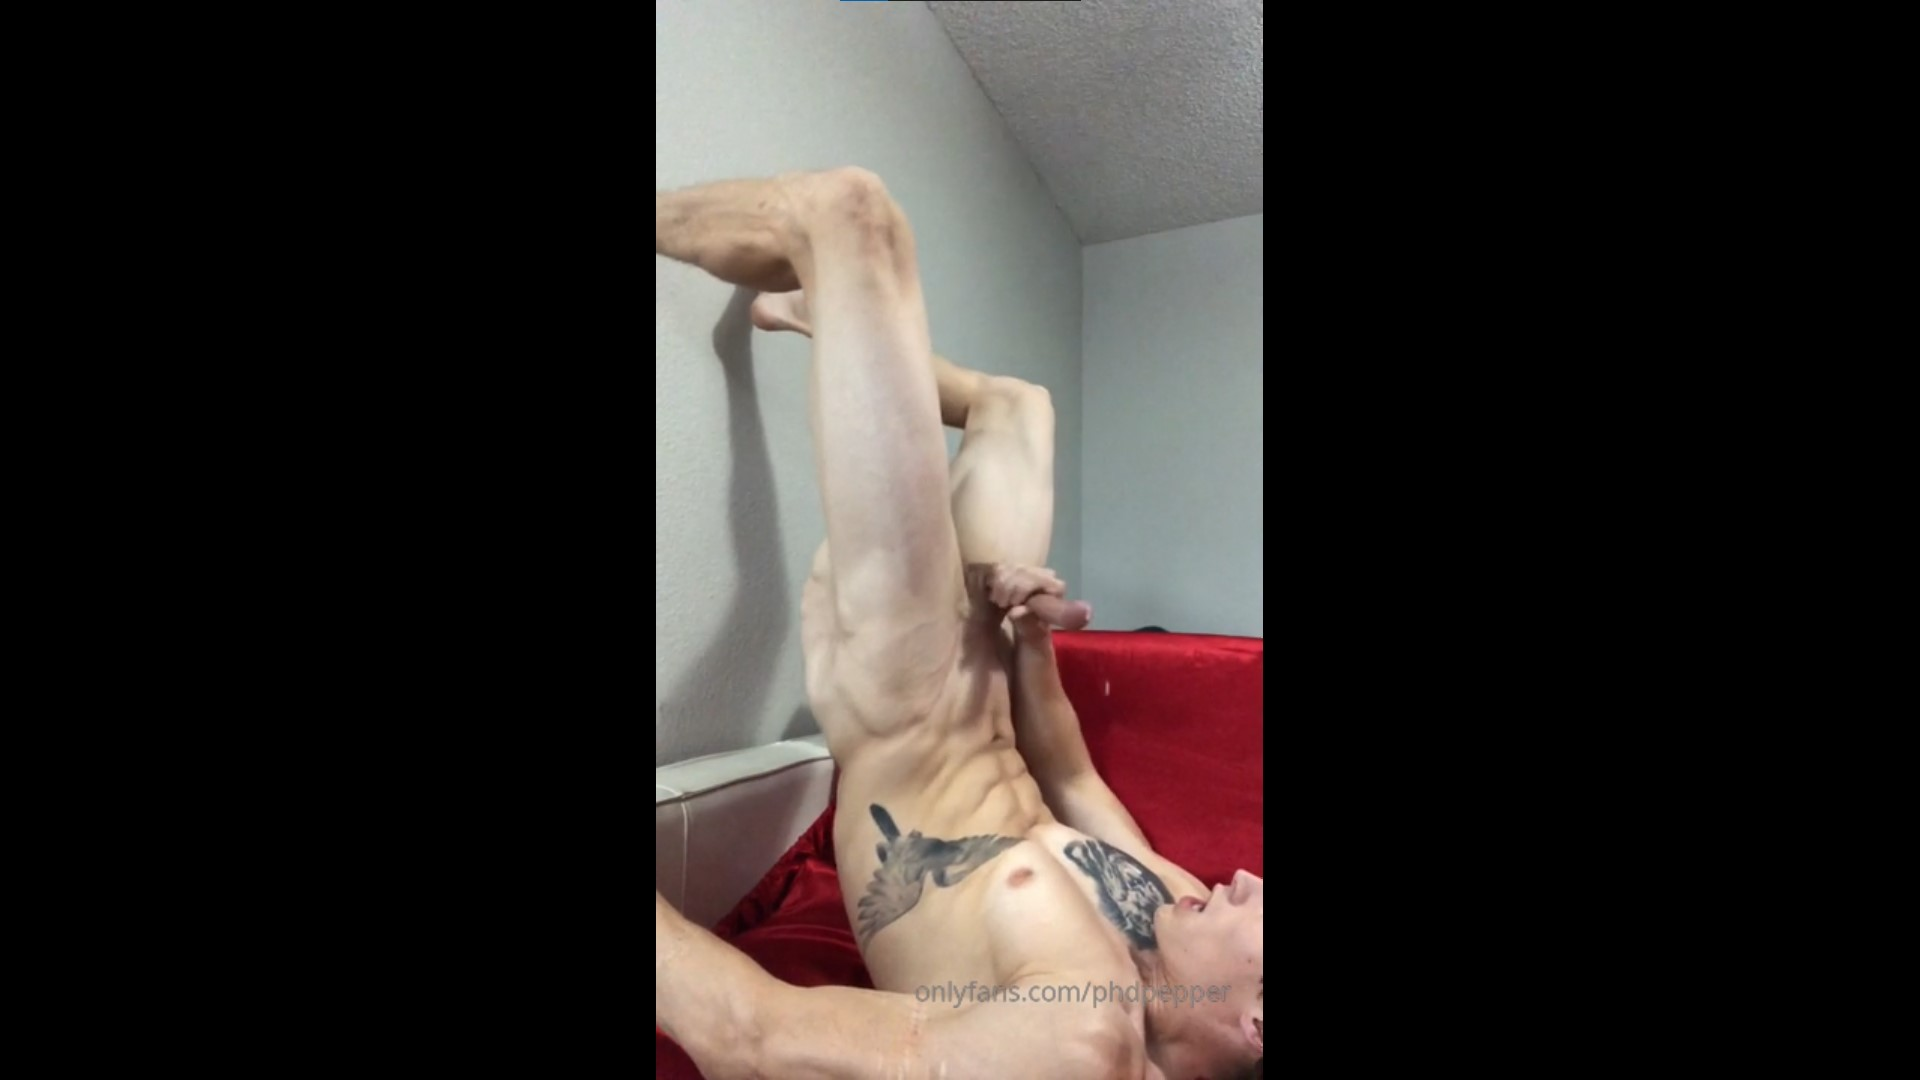 Jerking off and cumming over my face and chest – Daniel Jensen (phdpepper) – Gay for Fans – gayforfans.com